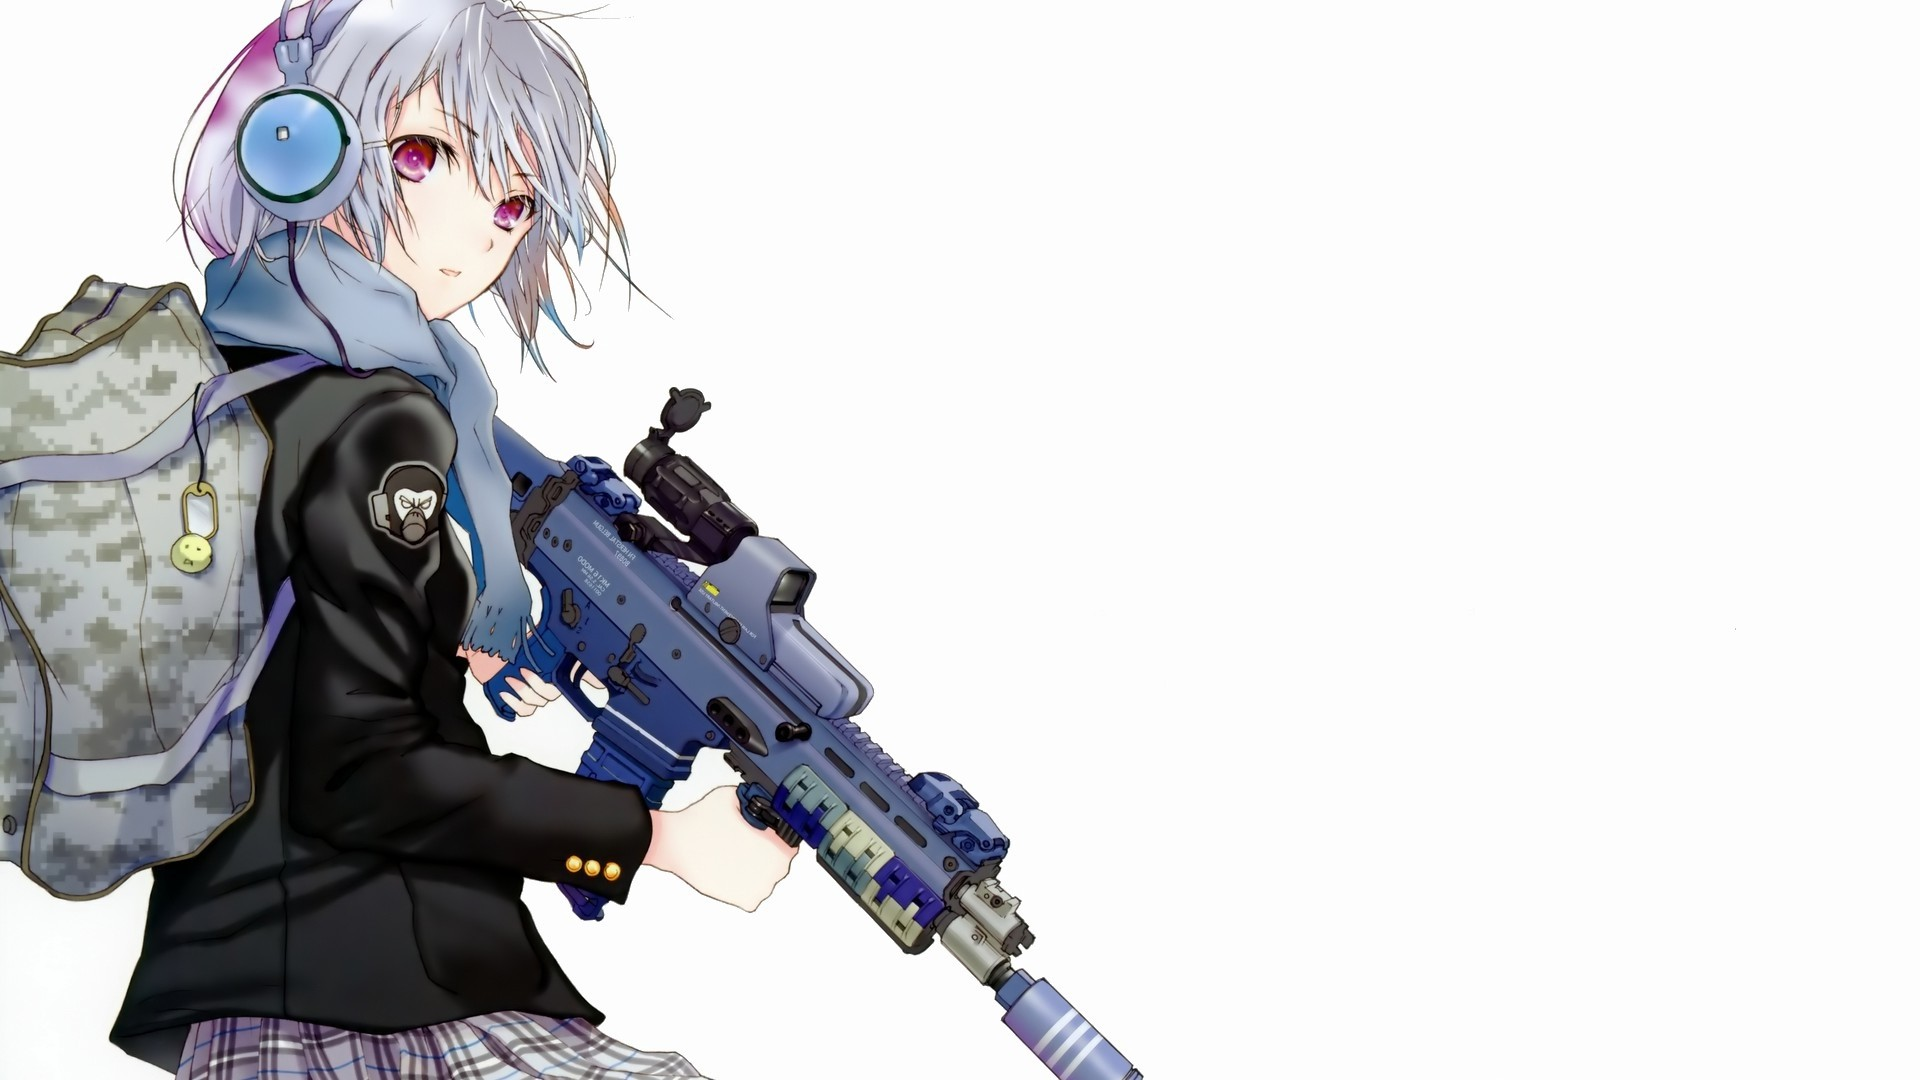 Preview wallpaper anime, girl, attitude, backpack, weapons 1920×1080